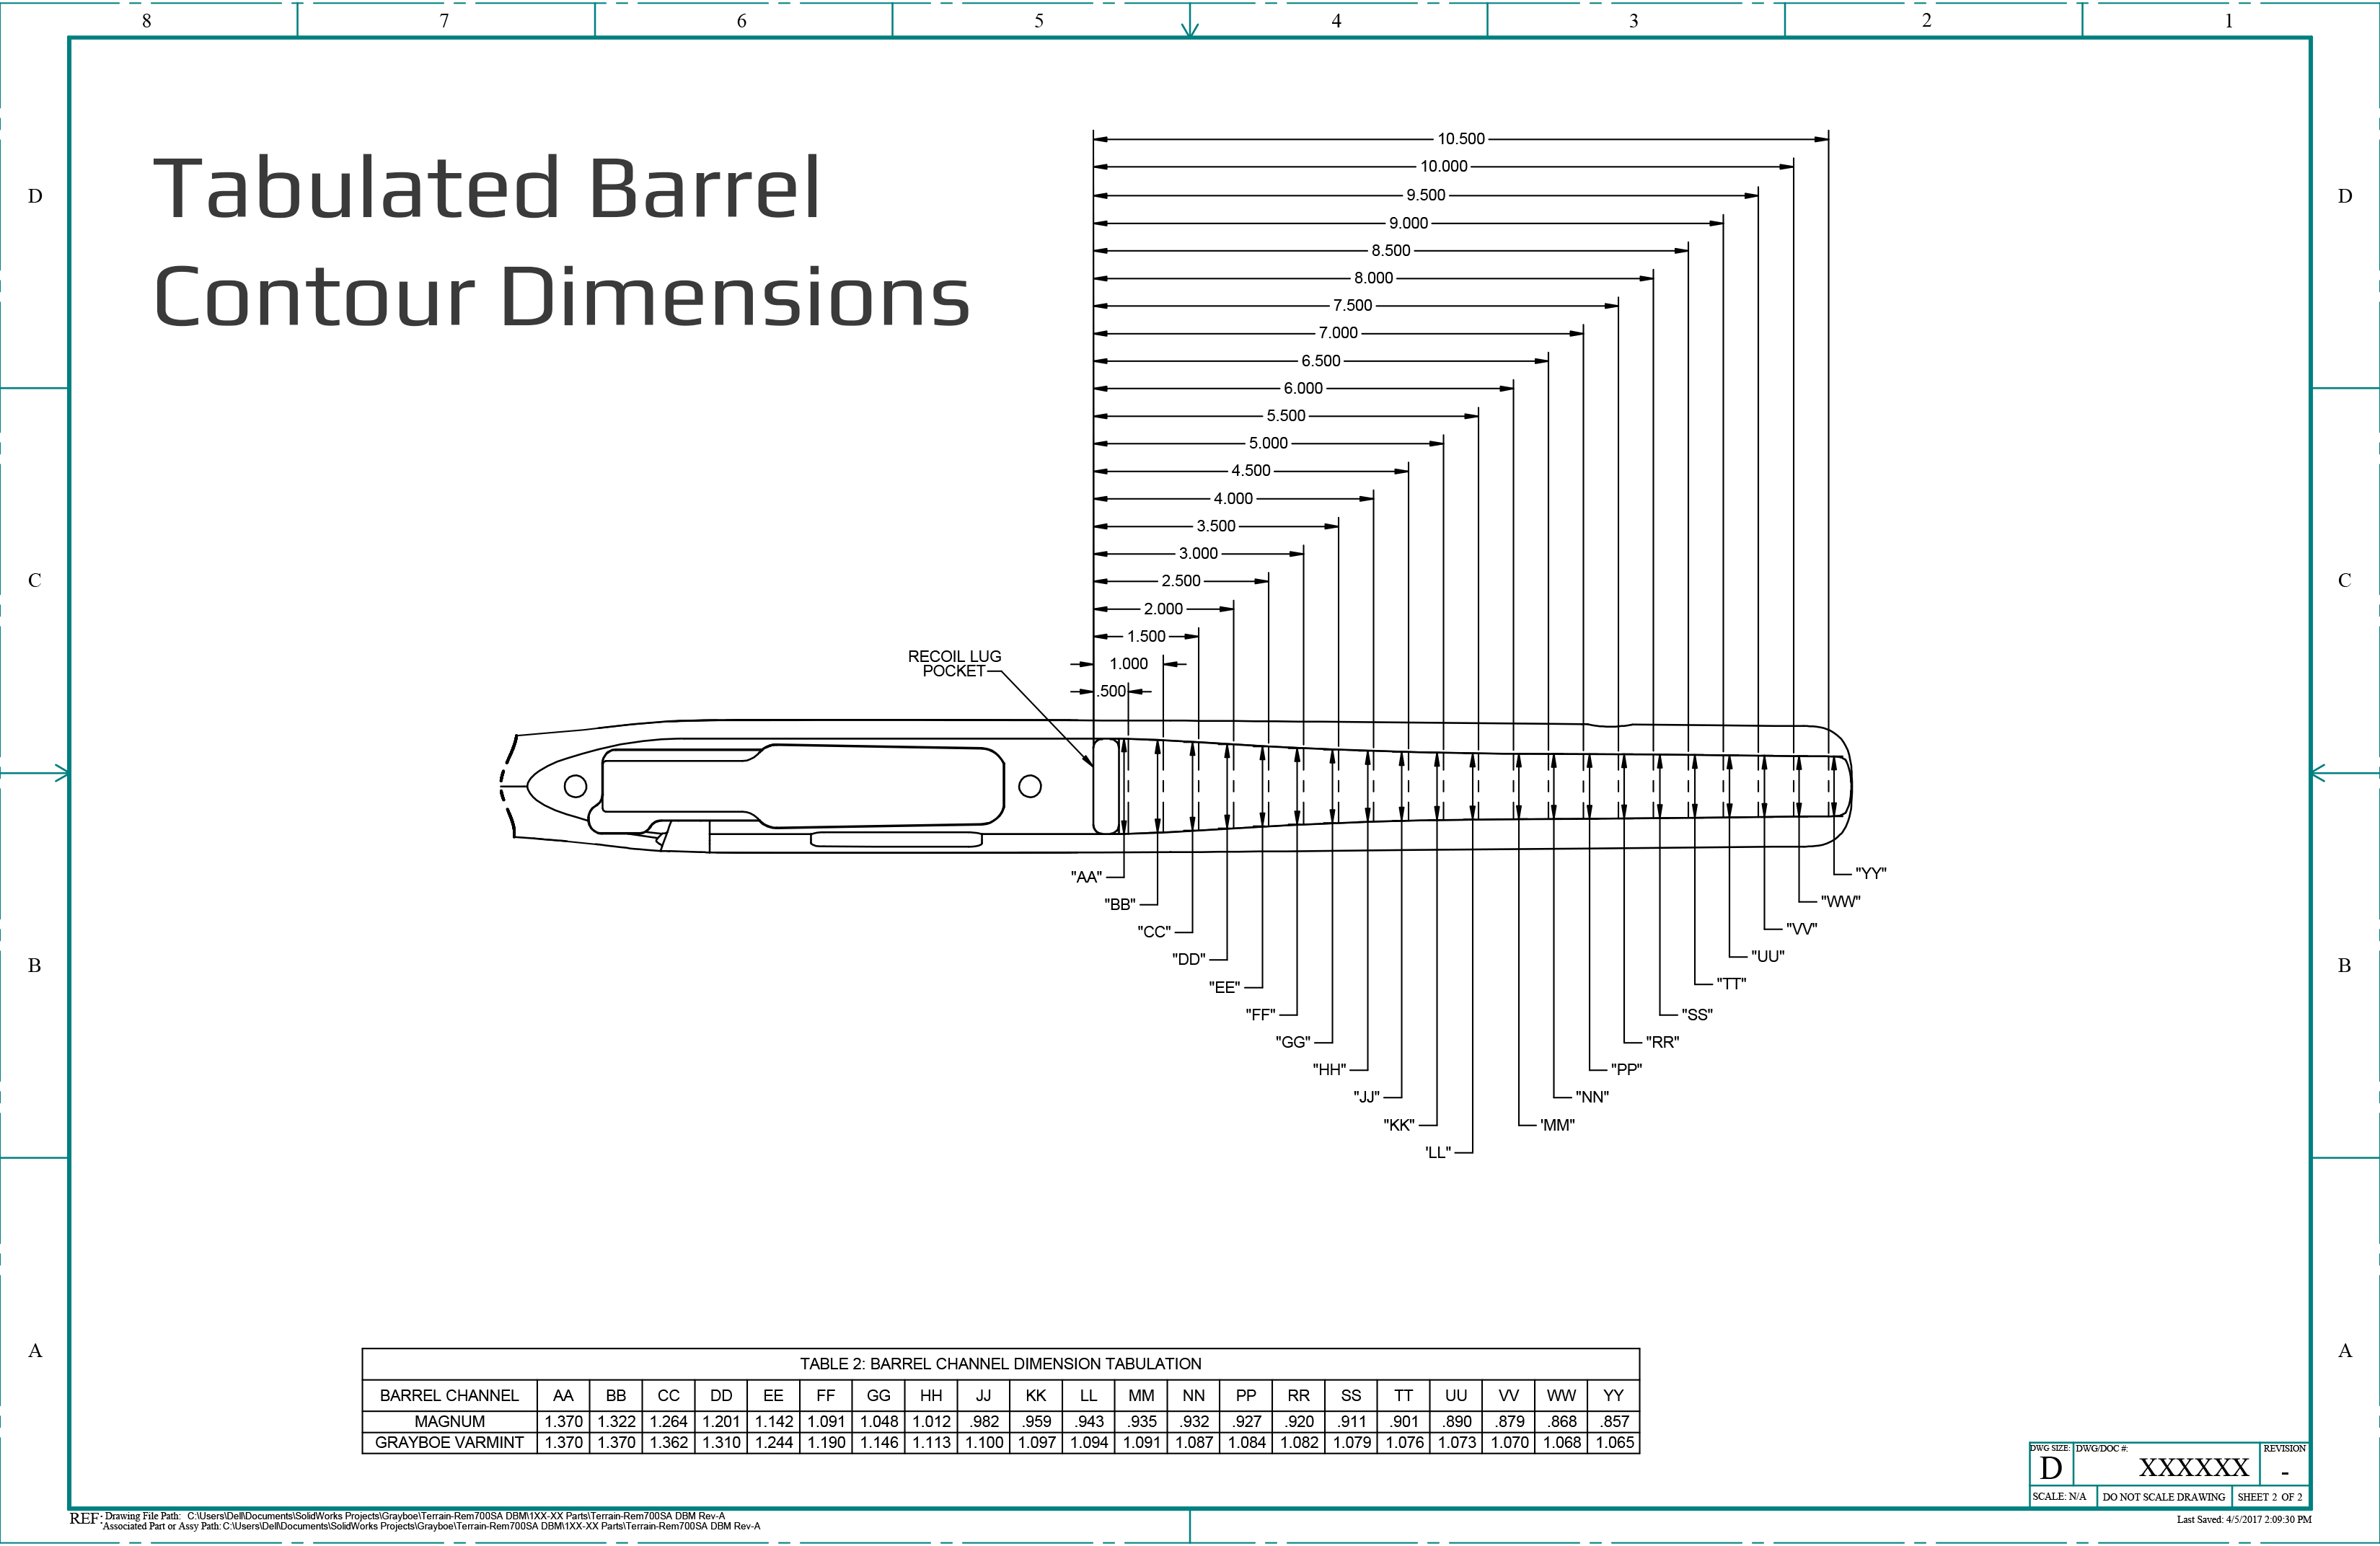 tabulatedbarrelcontourdimensions.png